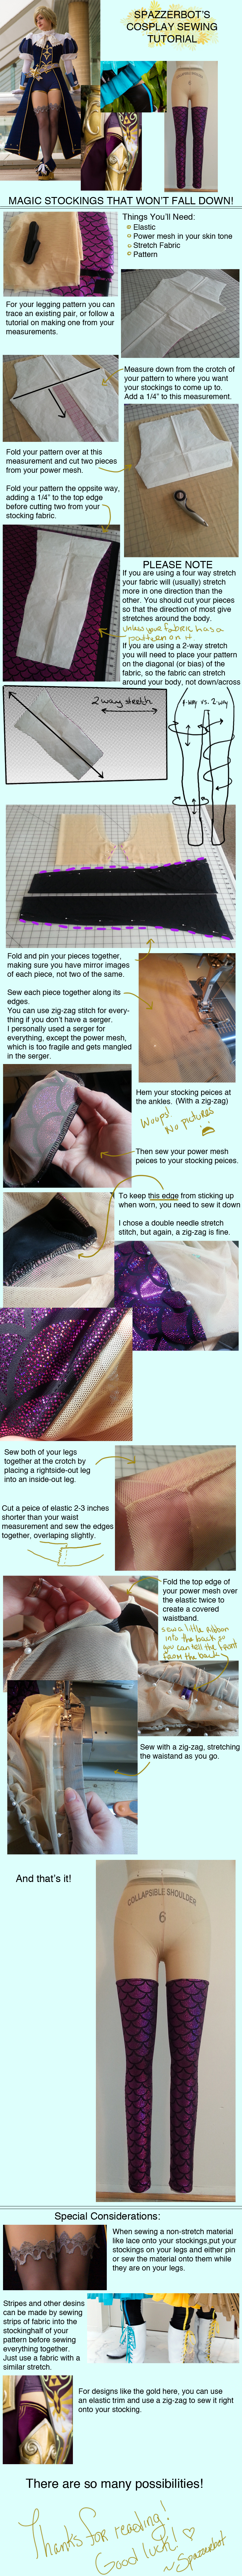 Cosplay Tutorial: Stockings That Won't Fall Down